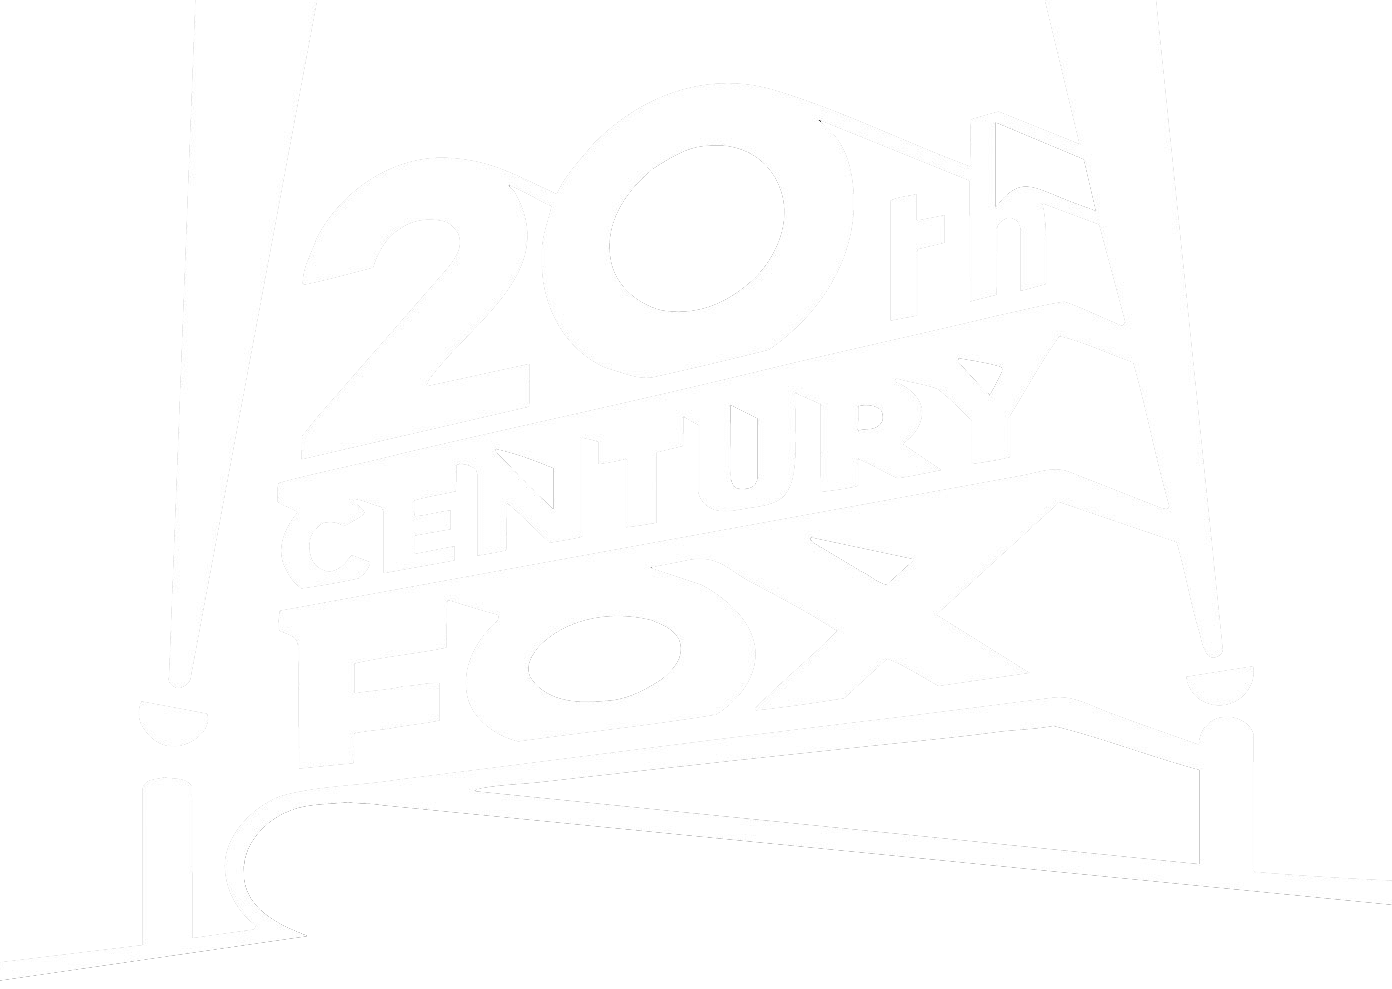 20th-century-fox-logo-black-and-white-copy.png